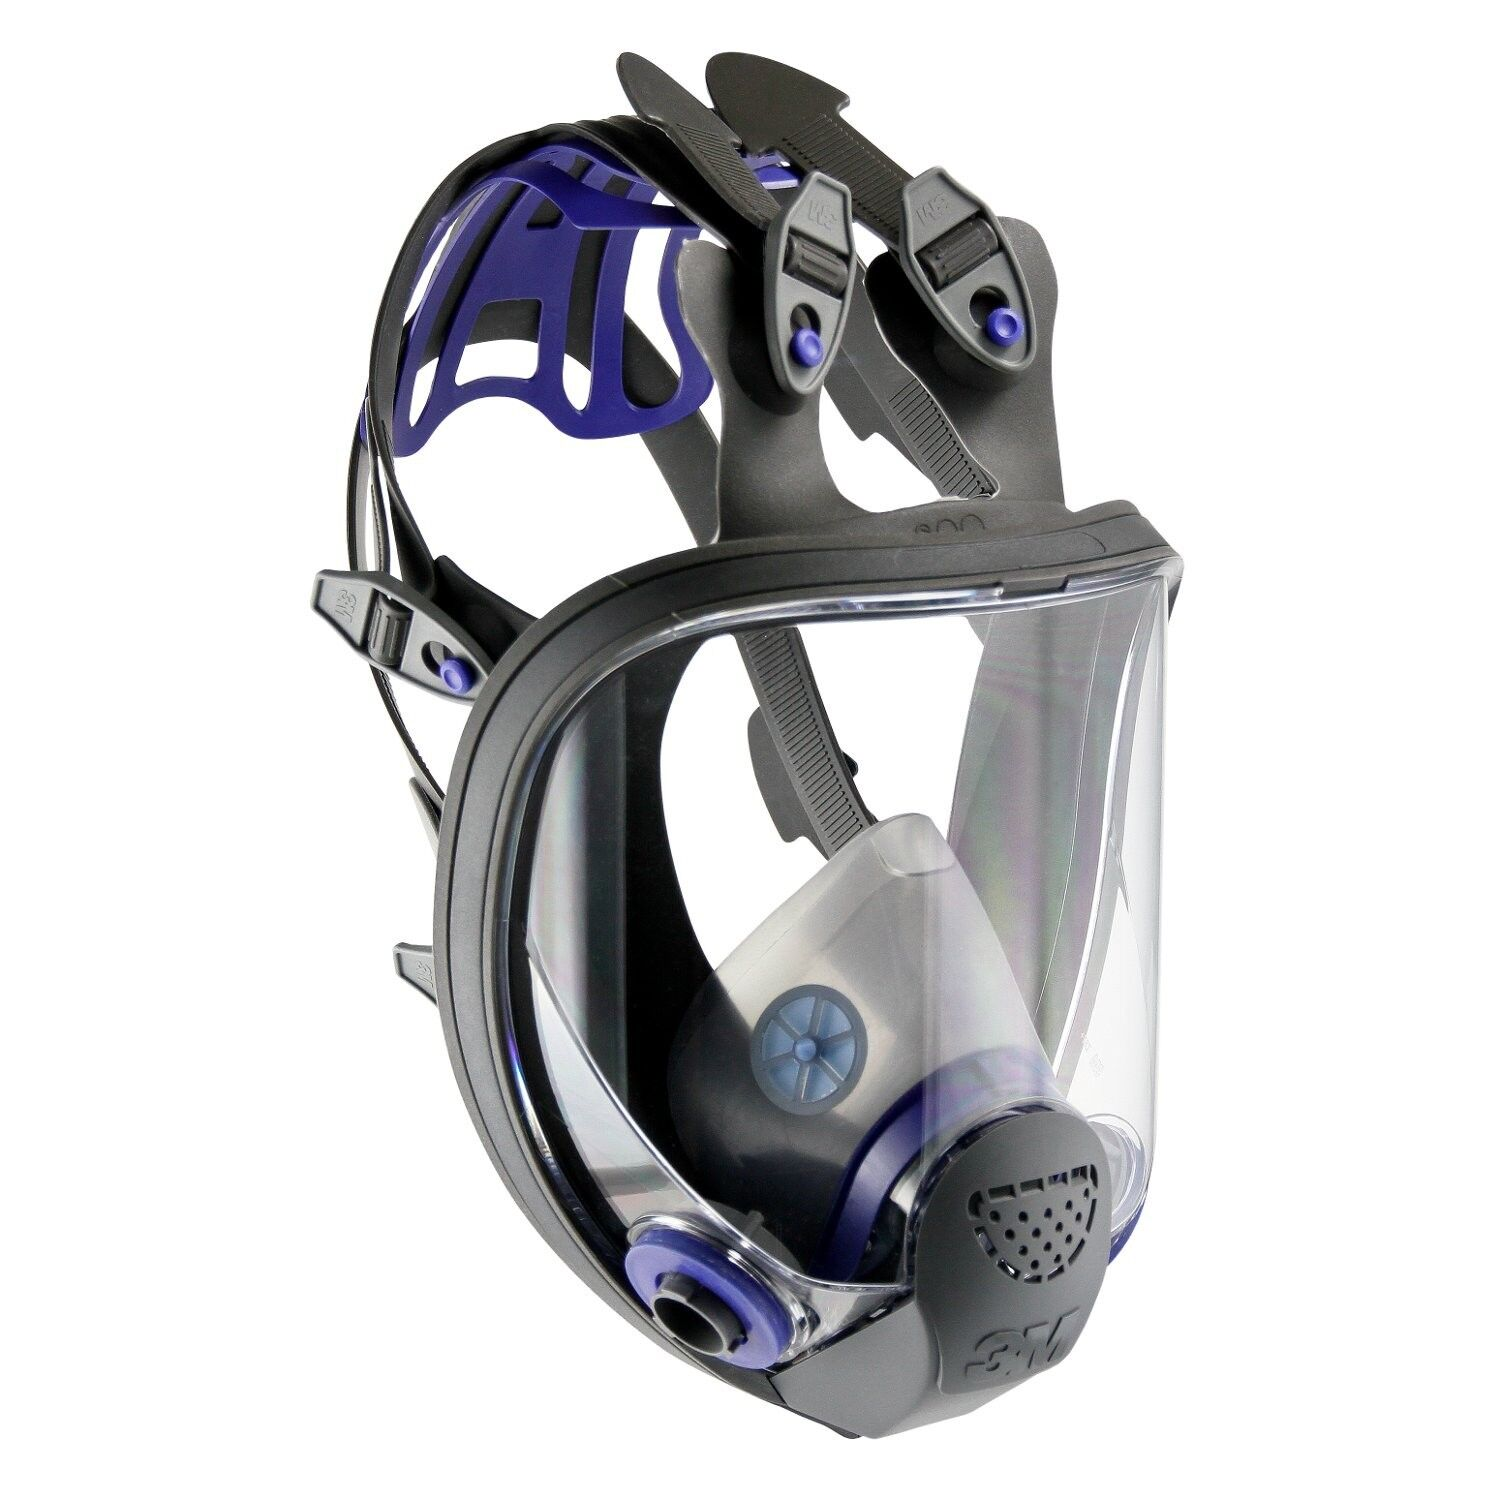 3M FF-403 Ultimate FX Full Facepiece Reusable Respirator, Large, *Free US Ship* Business & Industrial